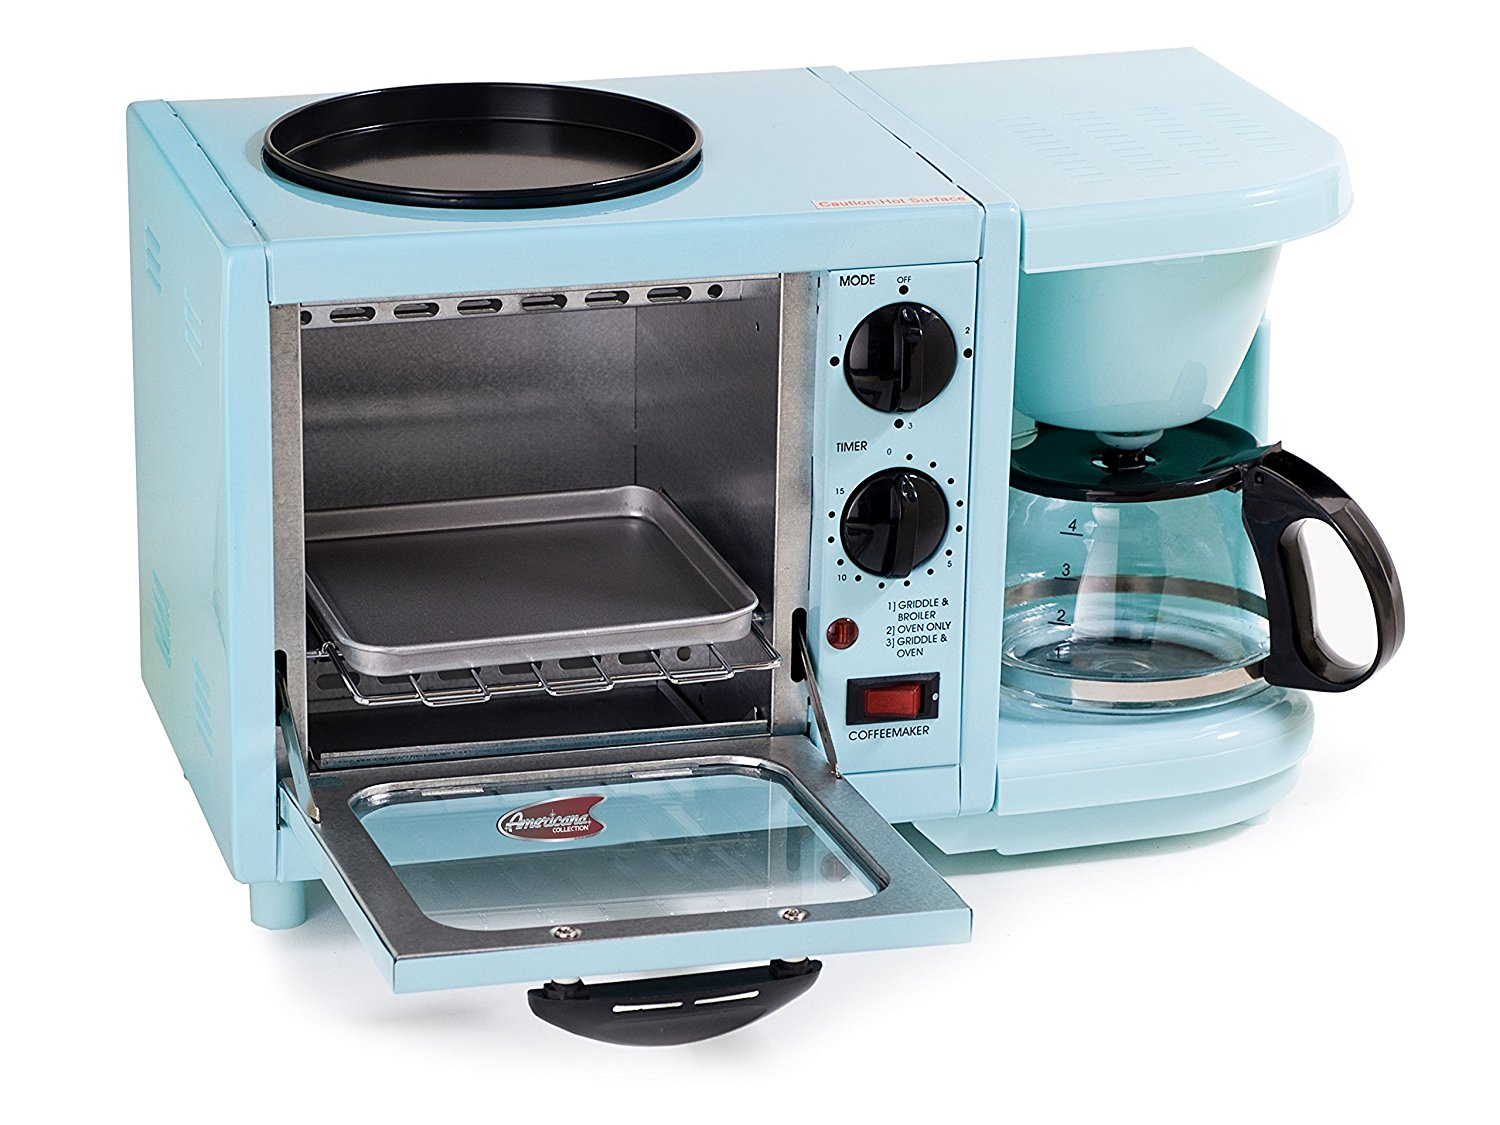 Brew coffee, fry eggs, make toast. A full breakfast with one compact device.